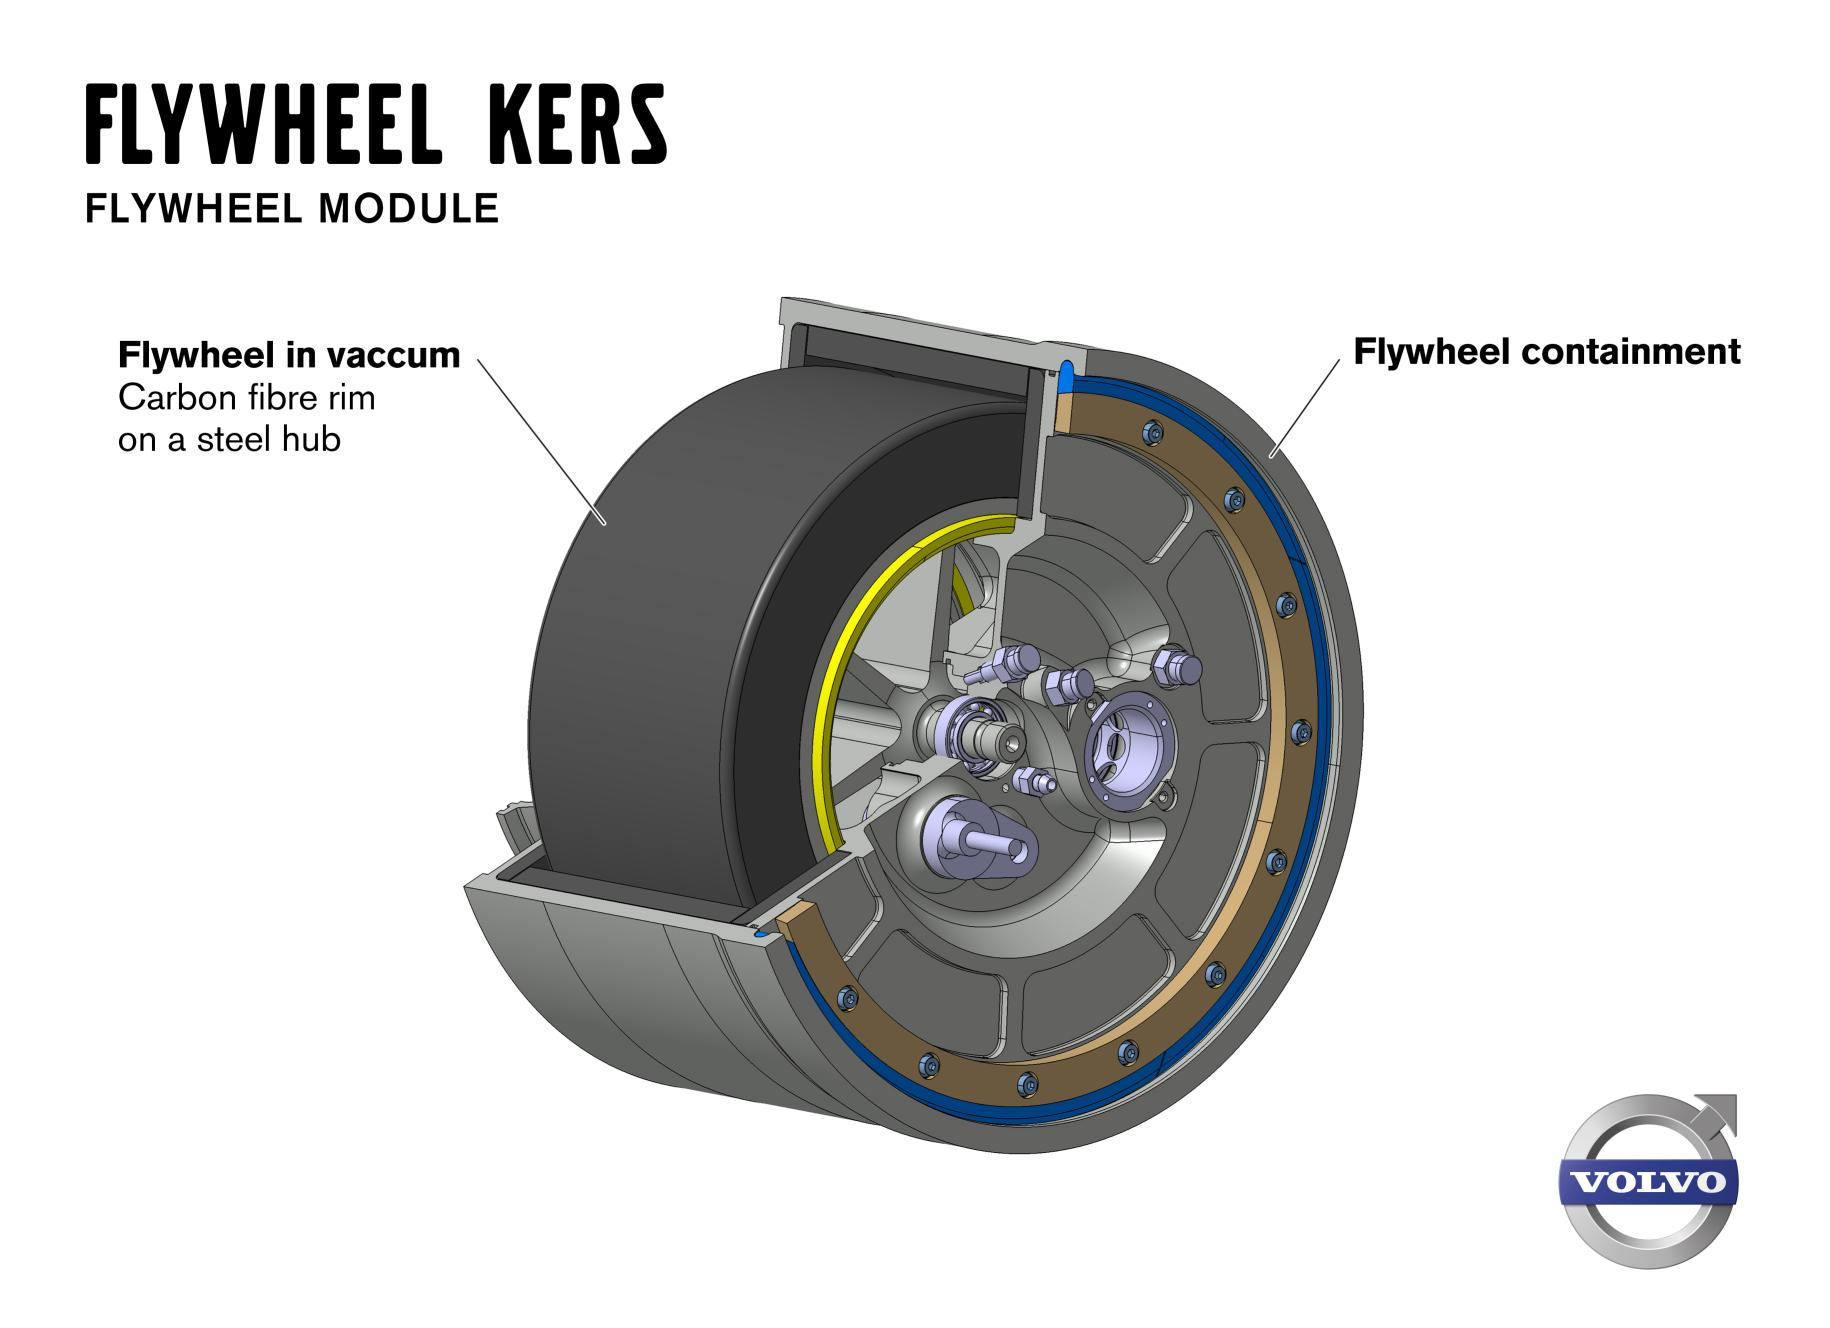 Volvo's New Flywheel Technology Improves Fuel Efficiency by Up to 25 Percent - autoevolution